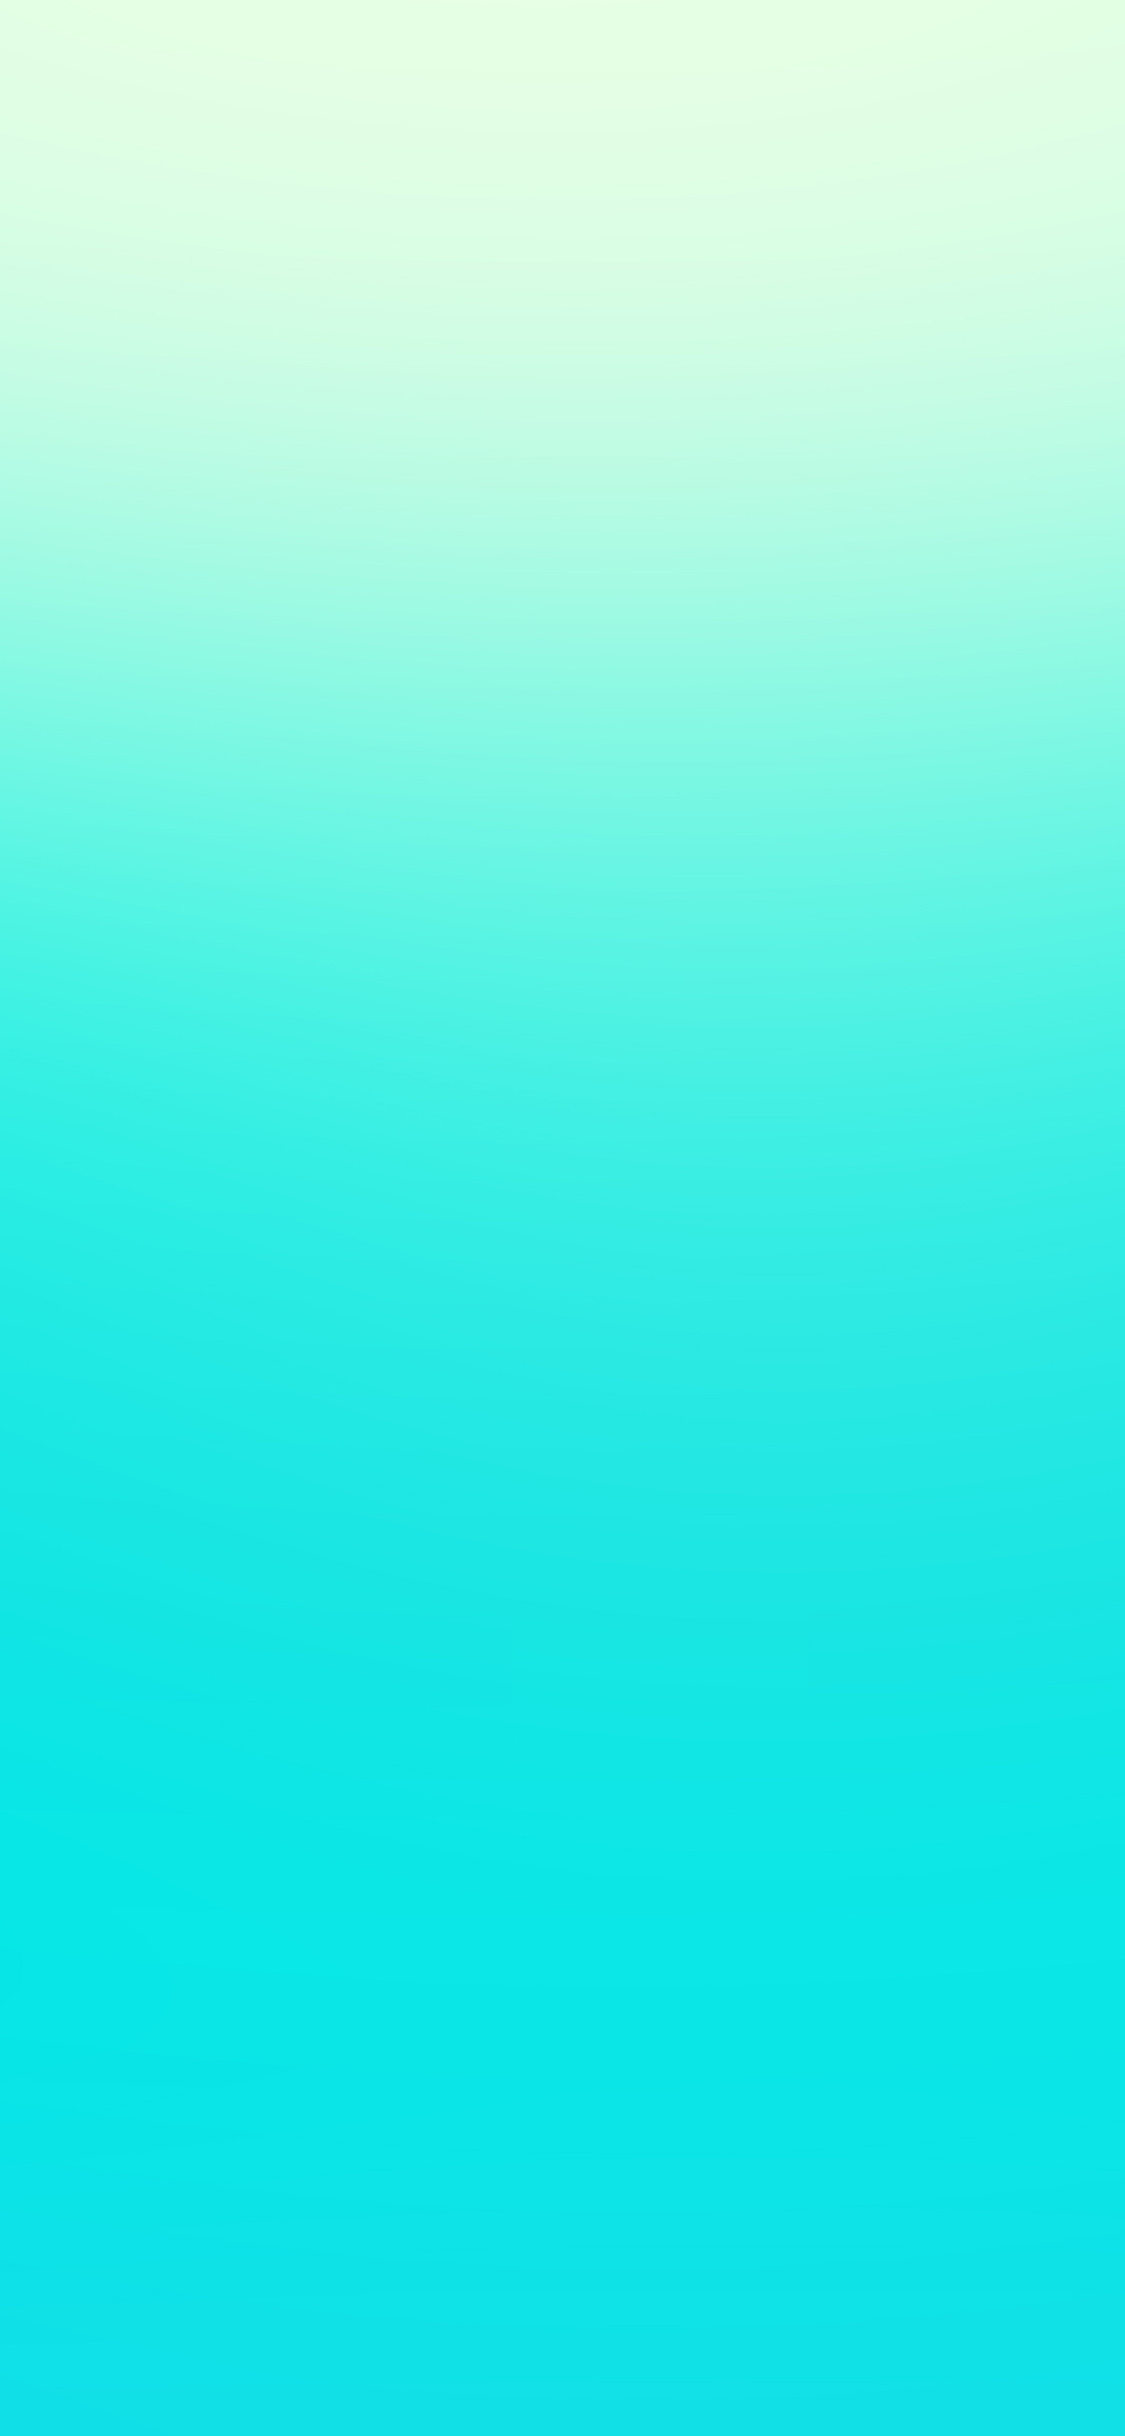 Iphonexpapers Com Iphone X Wallpaper Si06 Baby Blue Gradation Blur